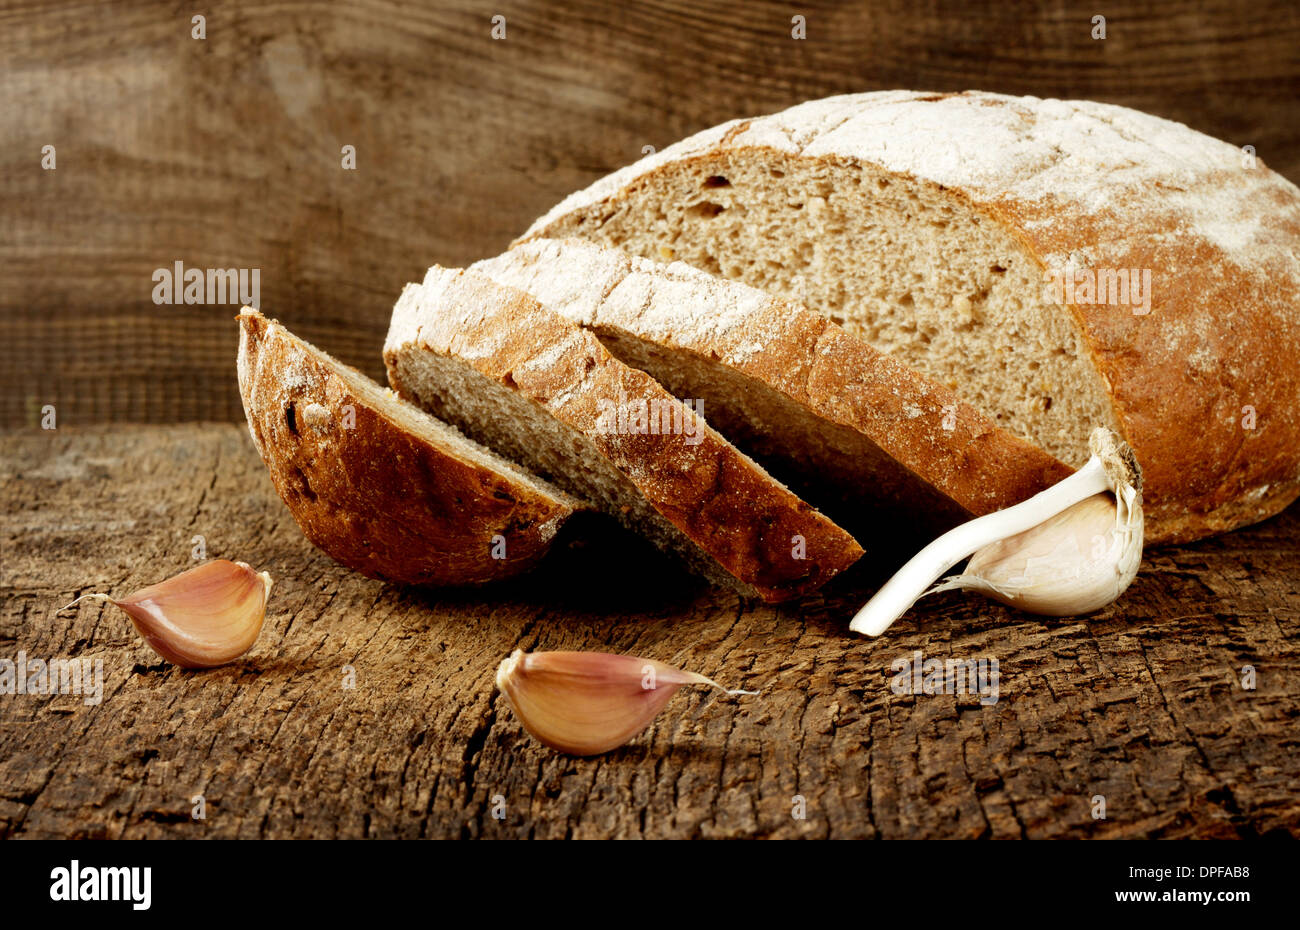 Black bread with garlic on a wooden background - Stock Image